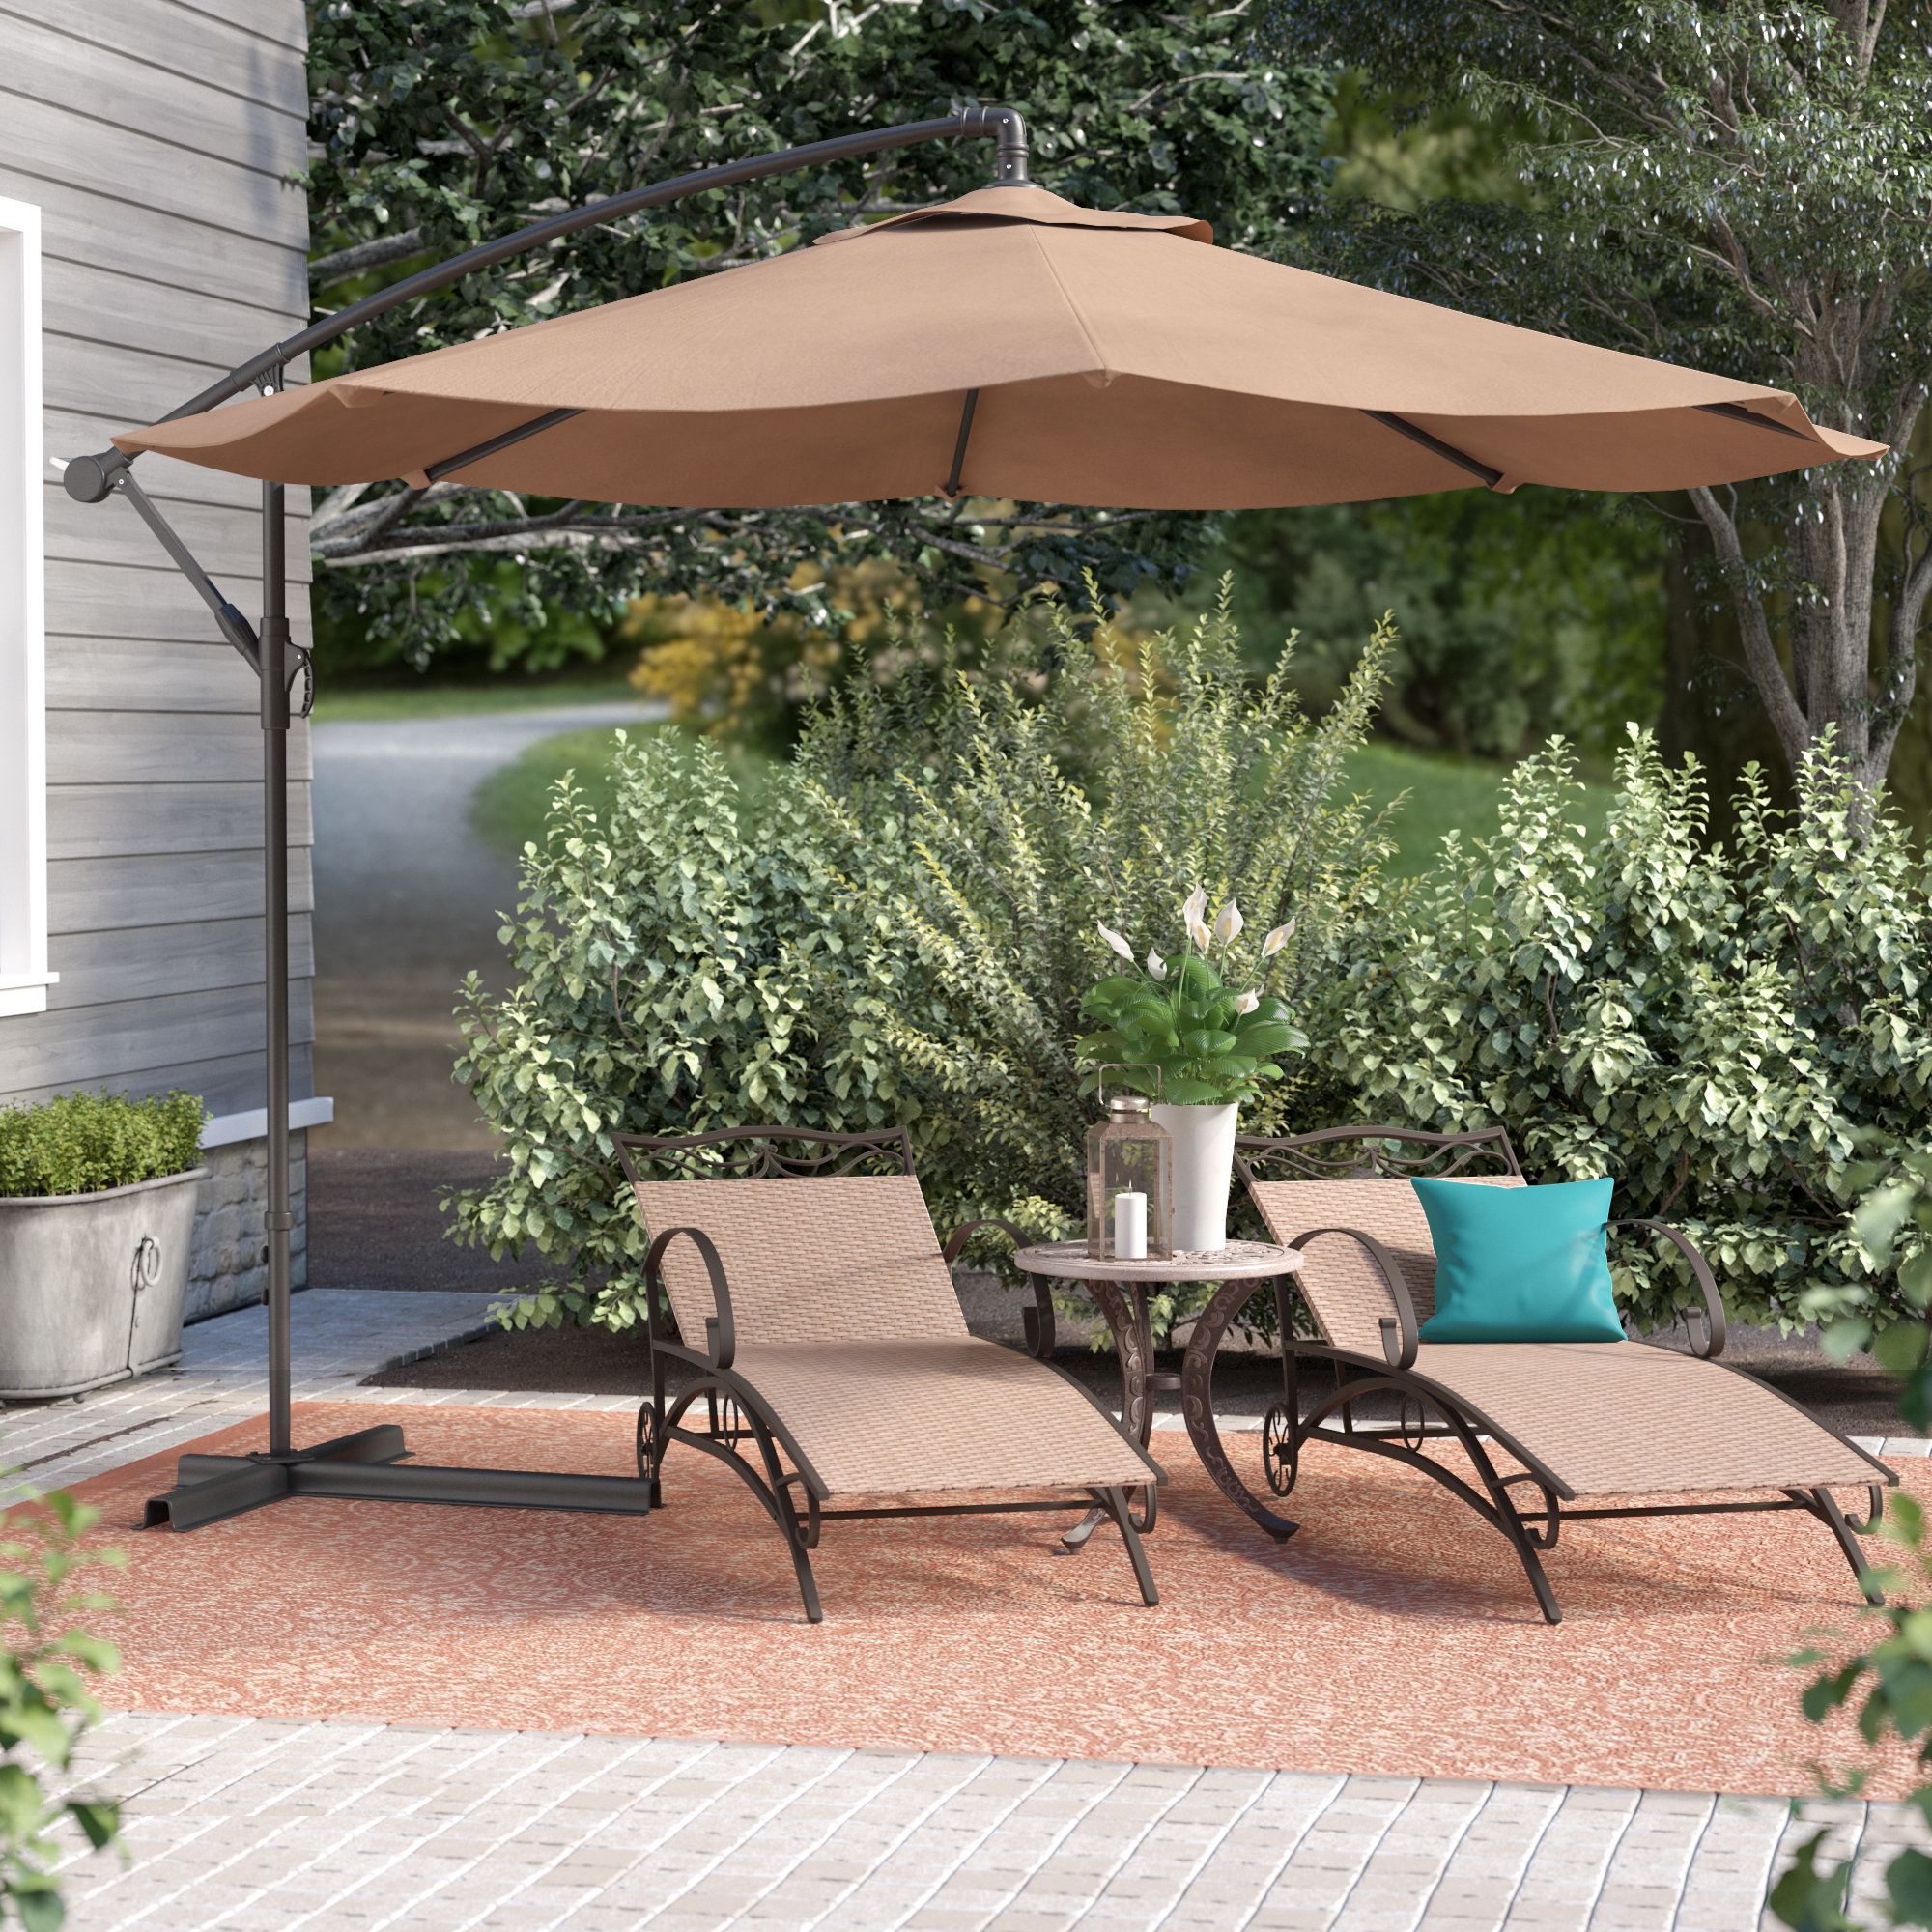 Bormann 10' Cantilever Umbrella Throughout Current Alyssa Cantilever Umbrellas (Gallery 10 of 20)